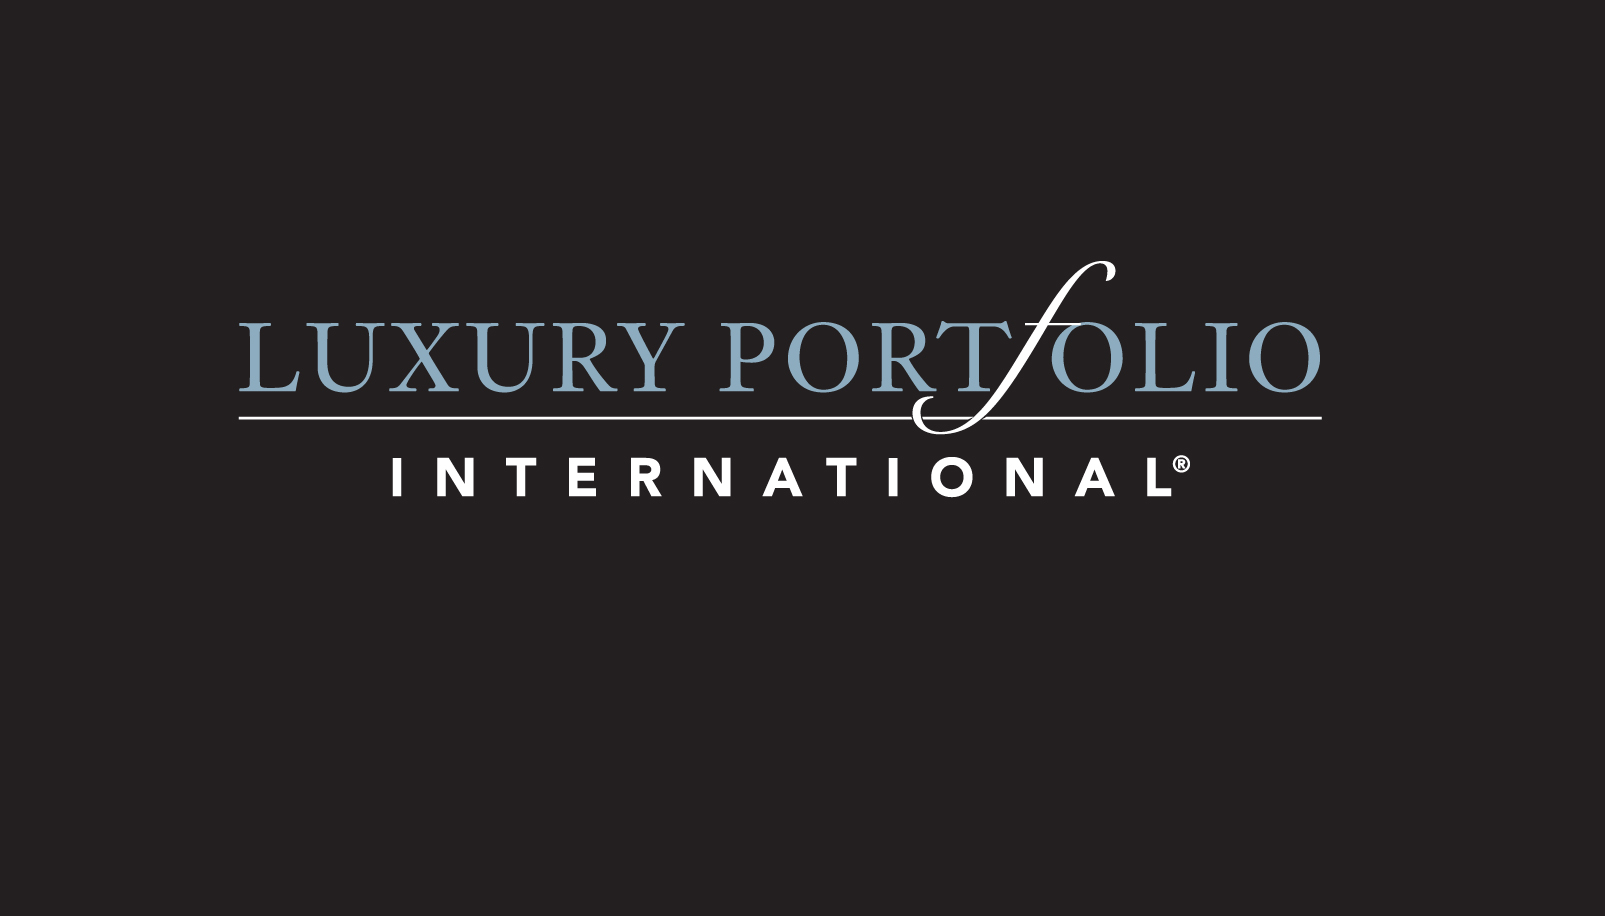 Luxury Portfolio International®